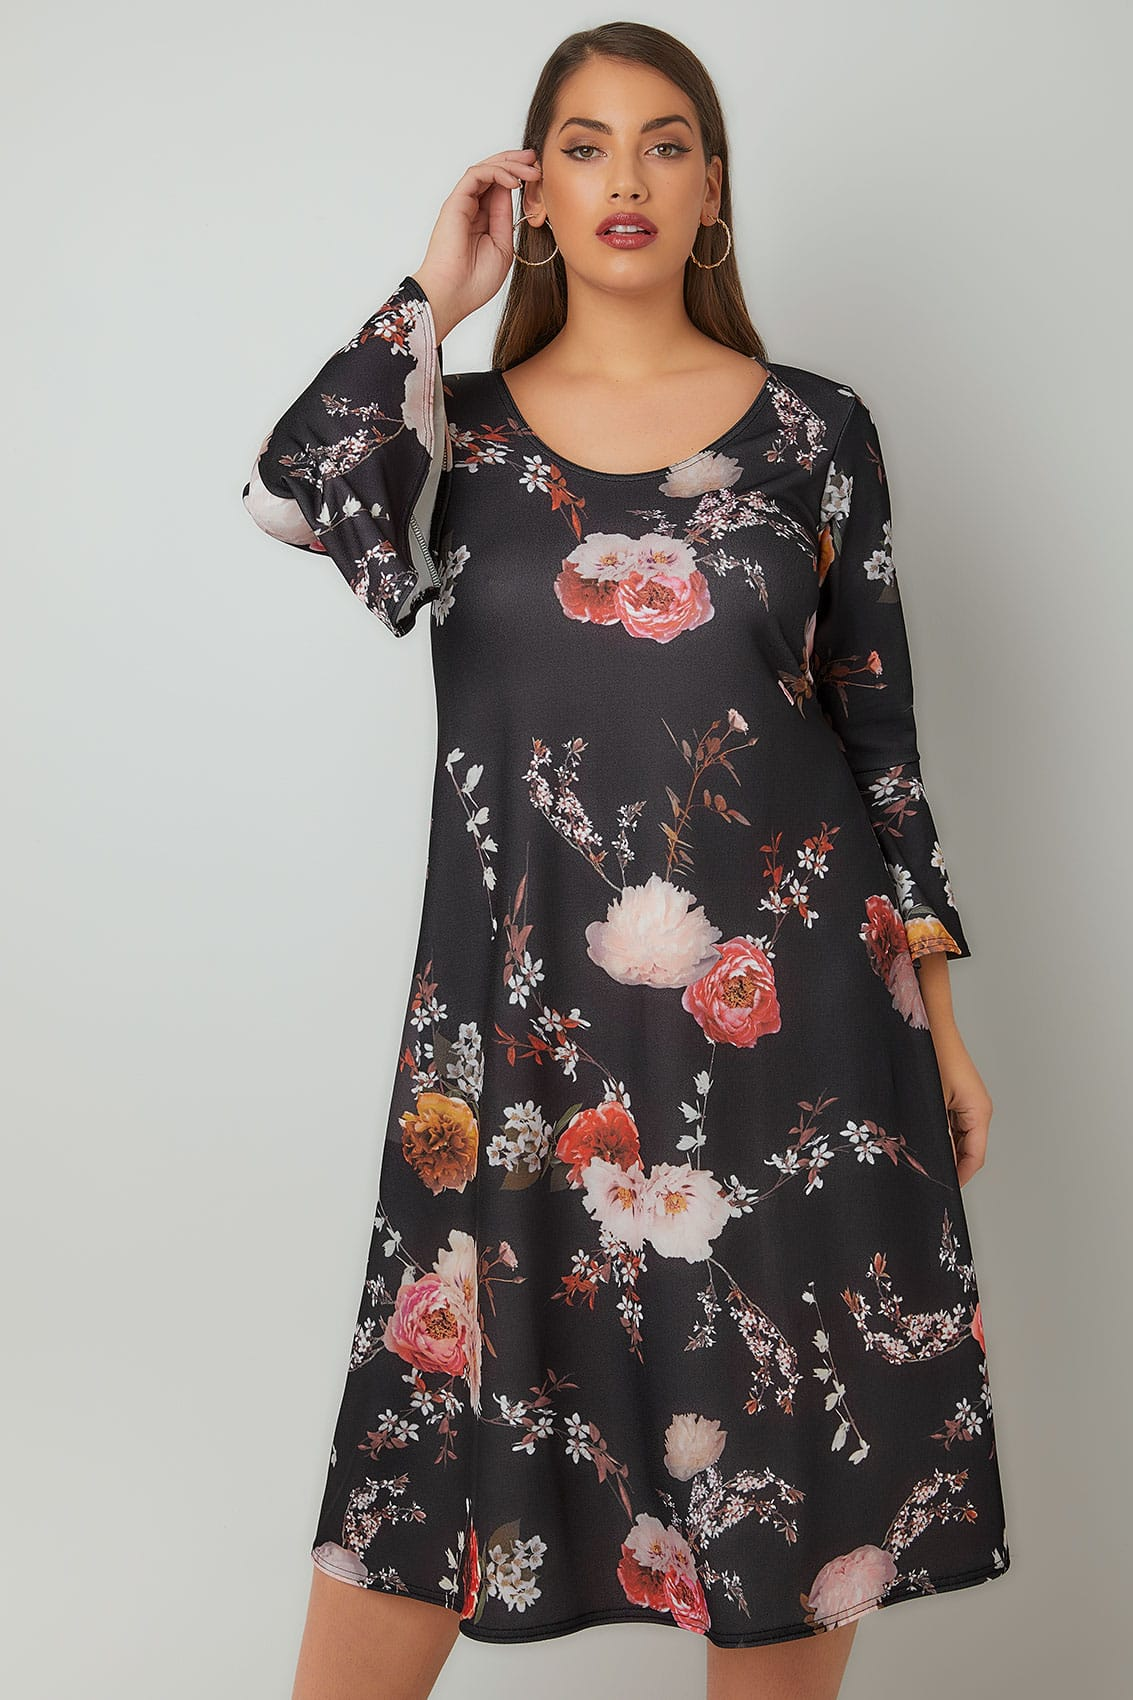 Dark Floral Dress Plus Size